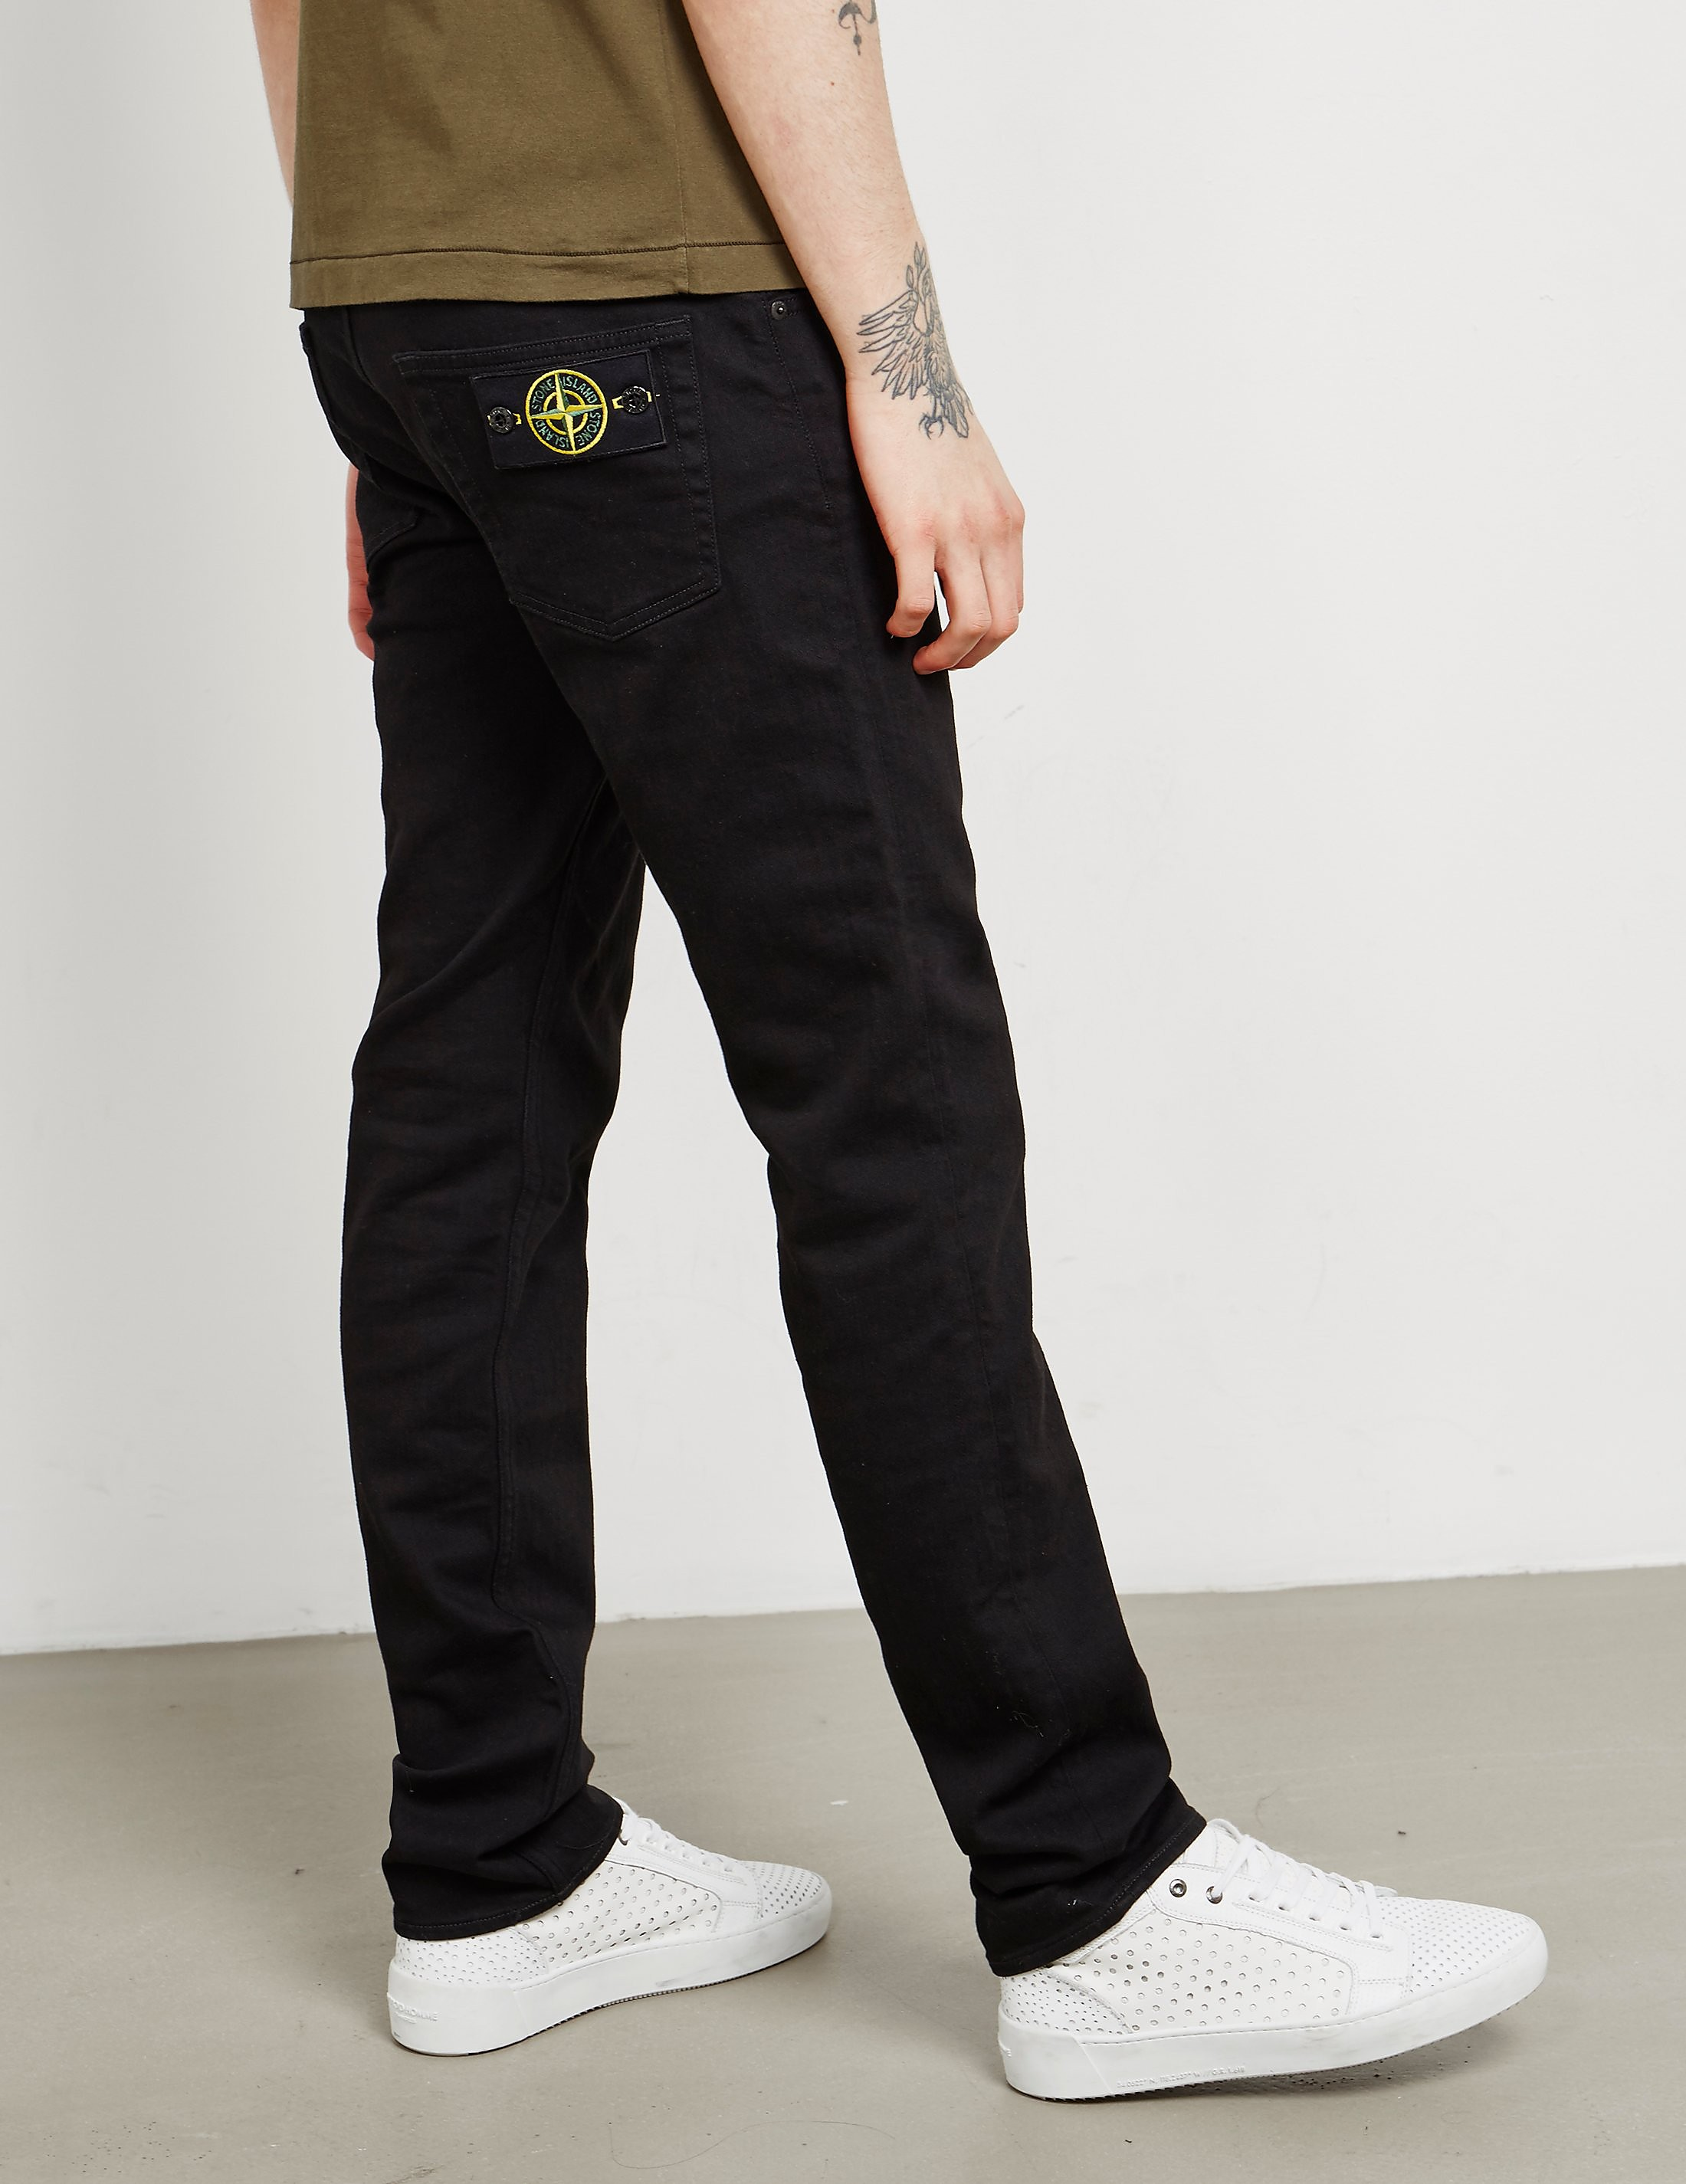 Stone island jeans | Shop for cheap Men's Clothing and ...